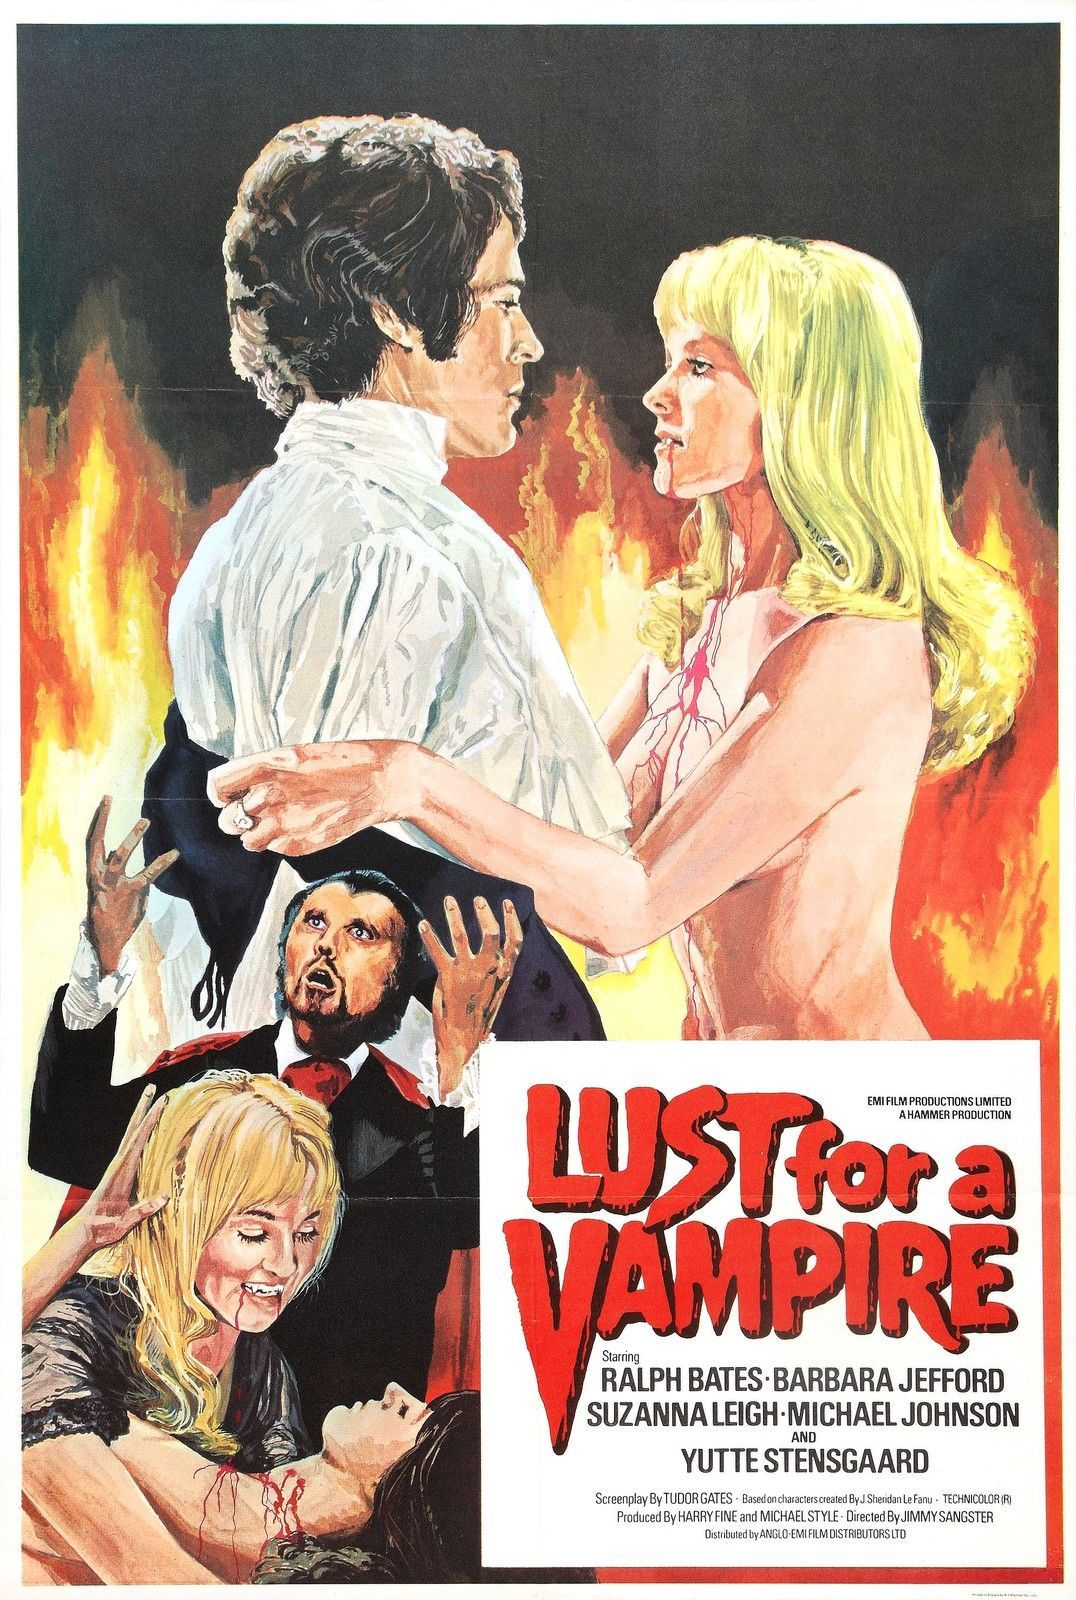 Lust for a Vampire poster (1971)